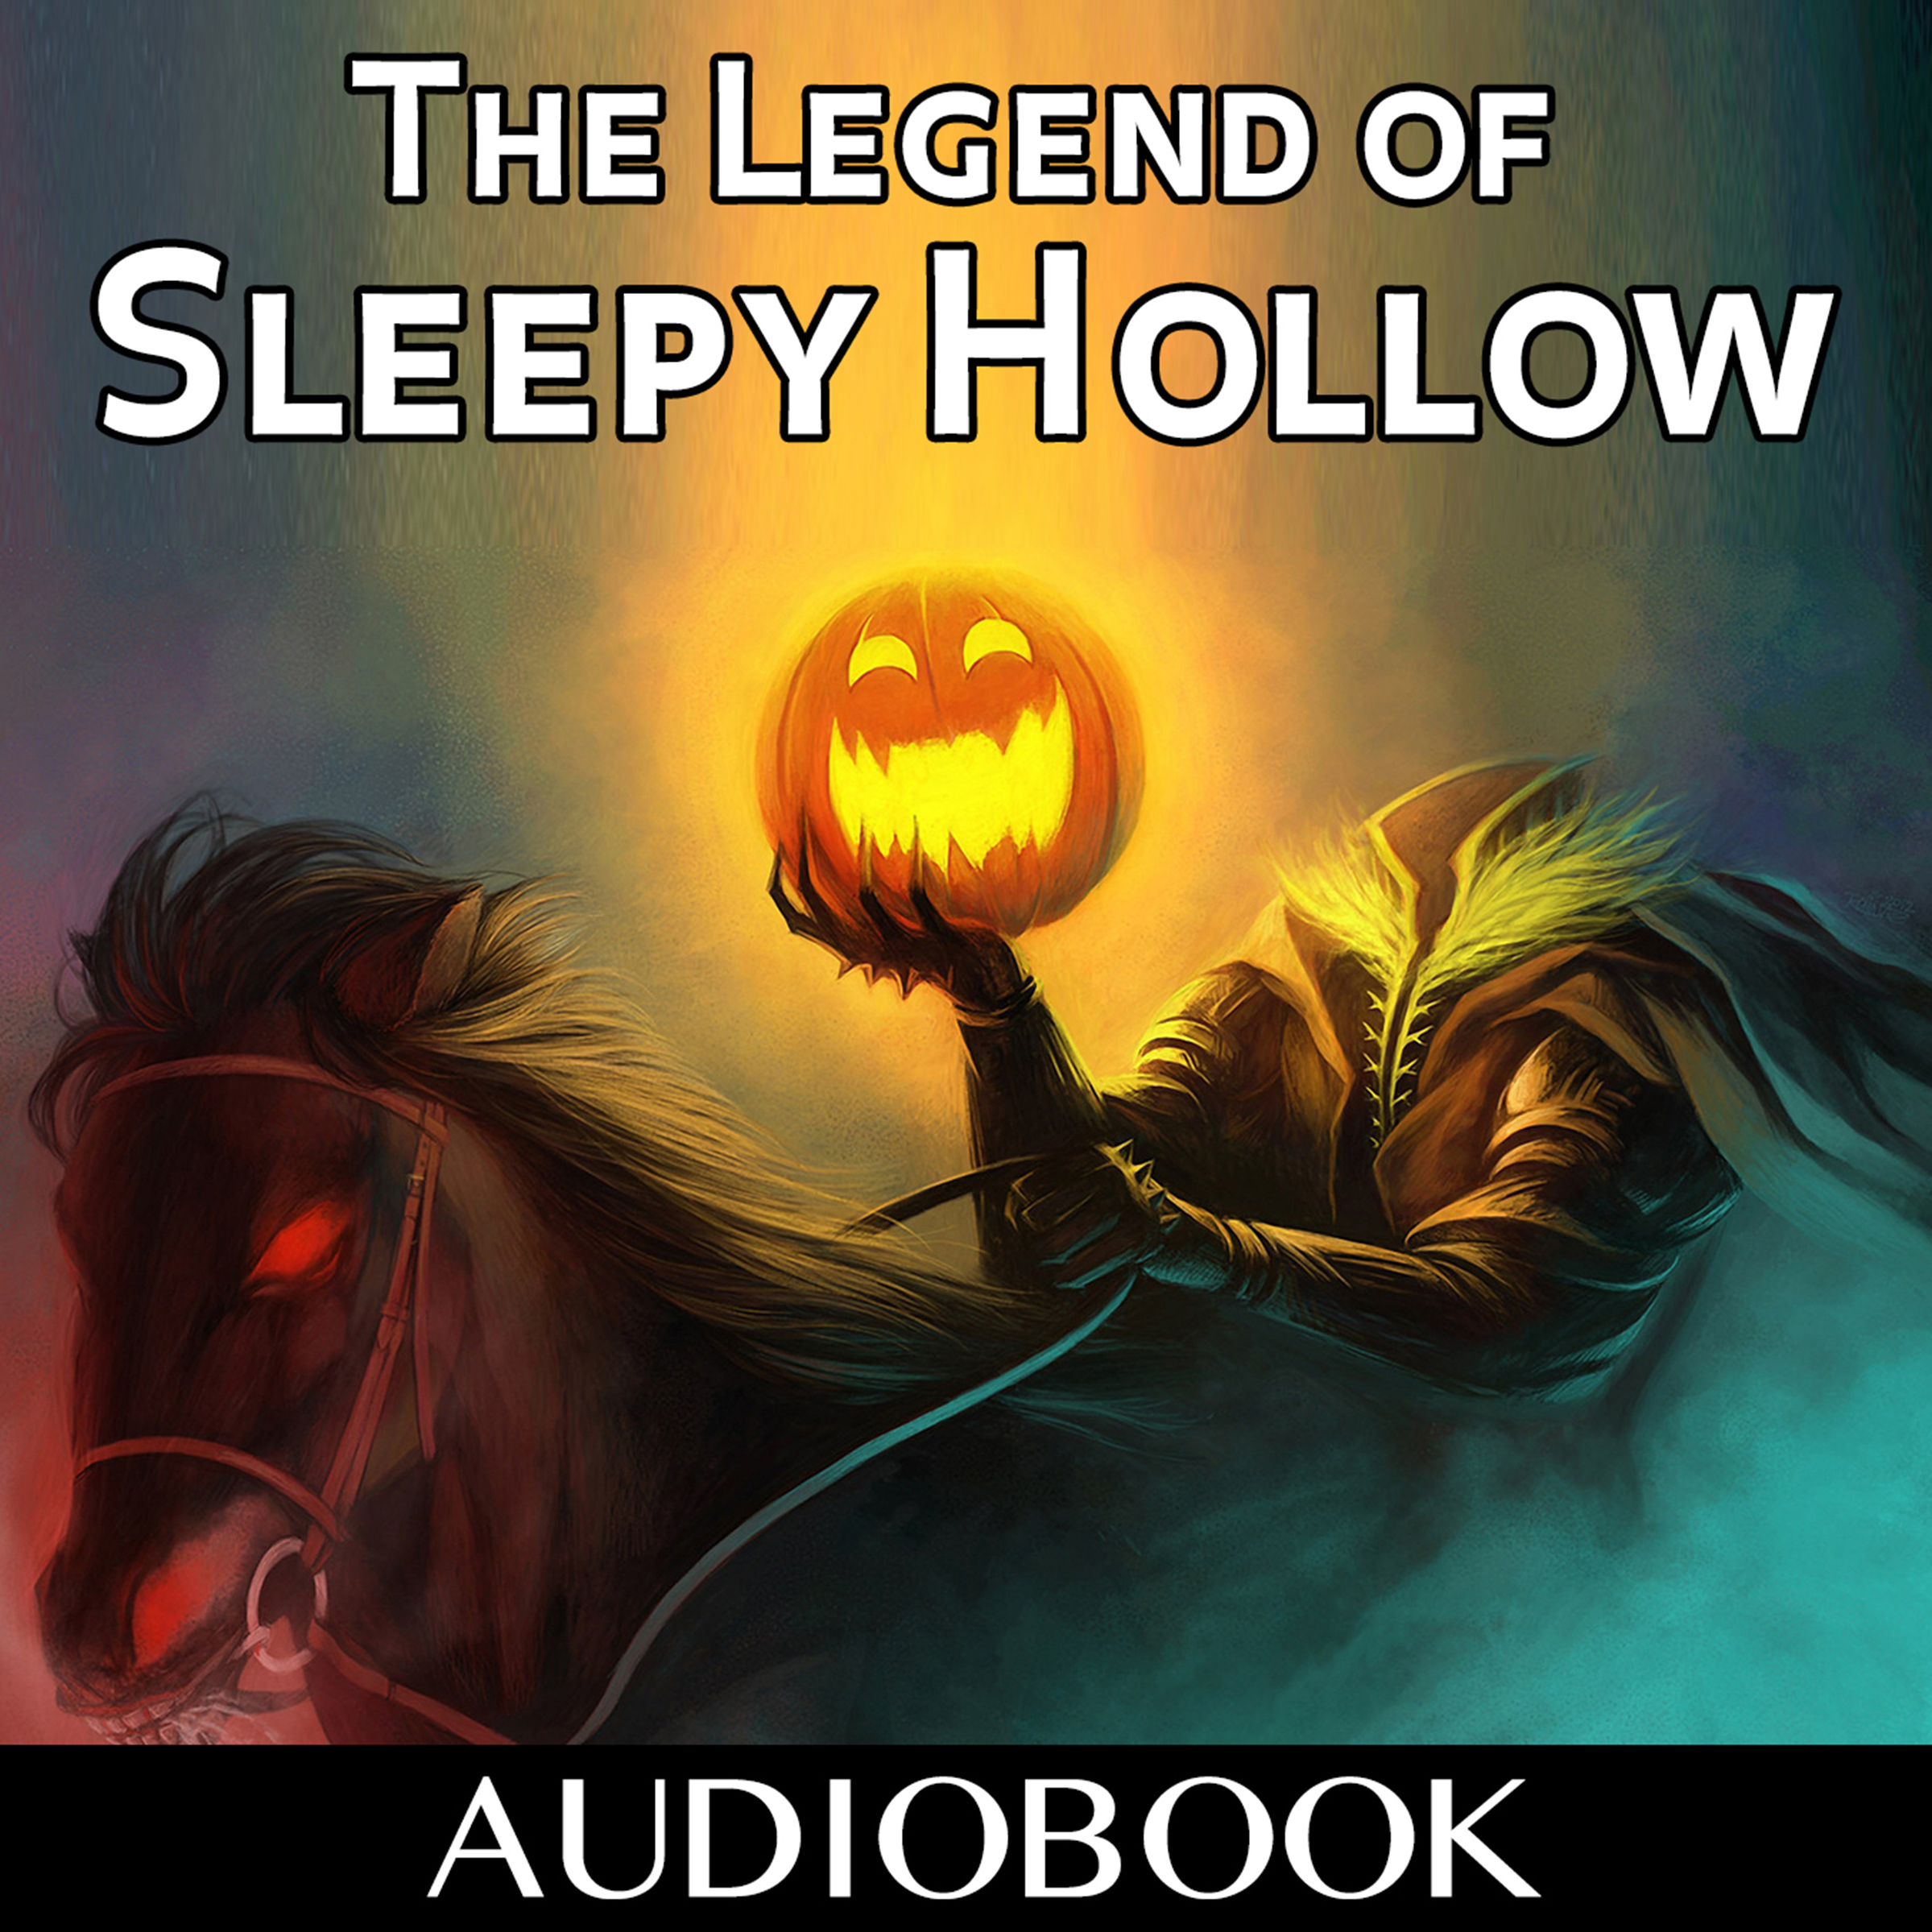 a comparison between sleepy hollow and the legend of the sleepy hollow